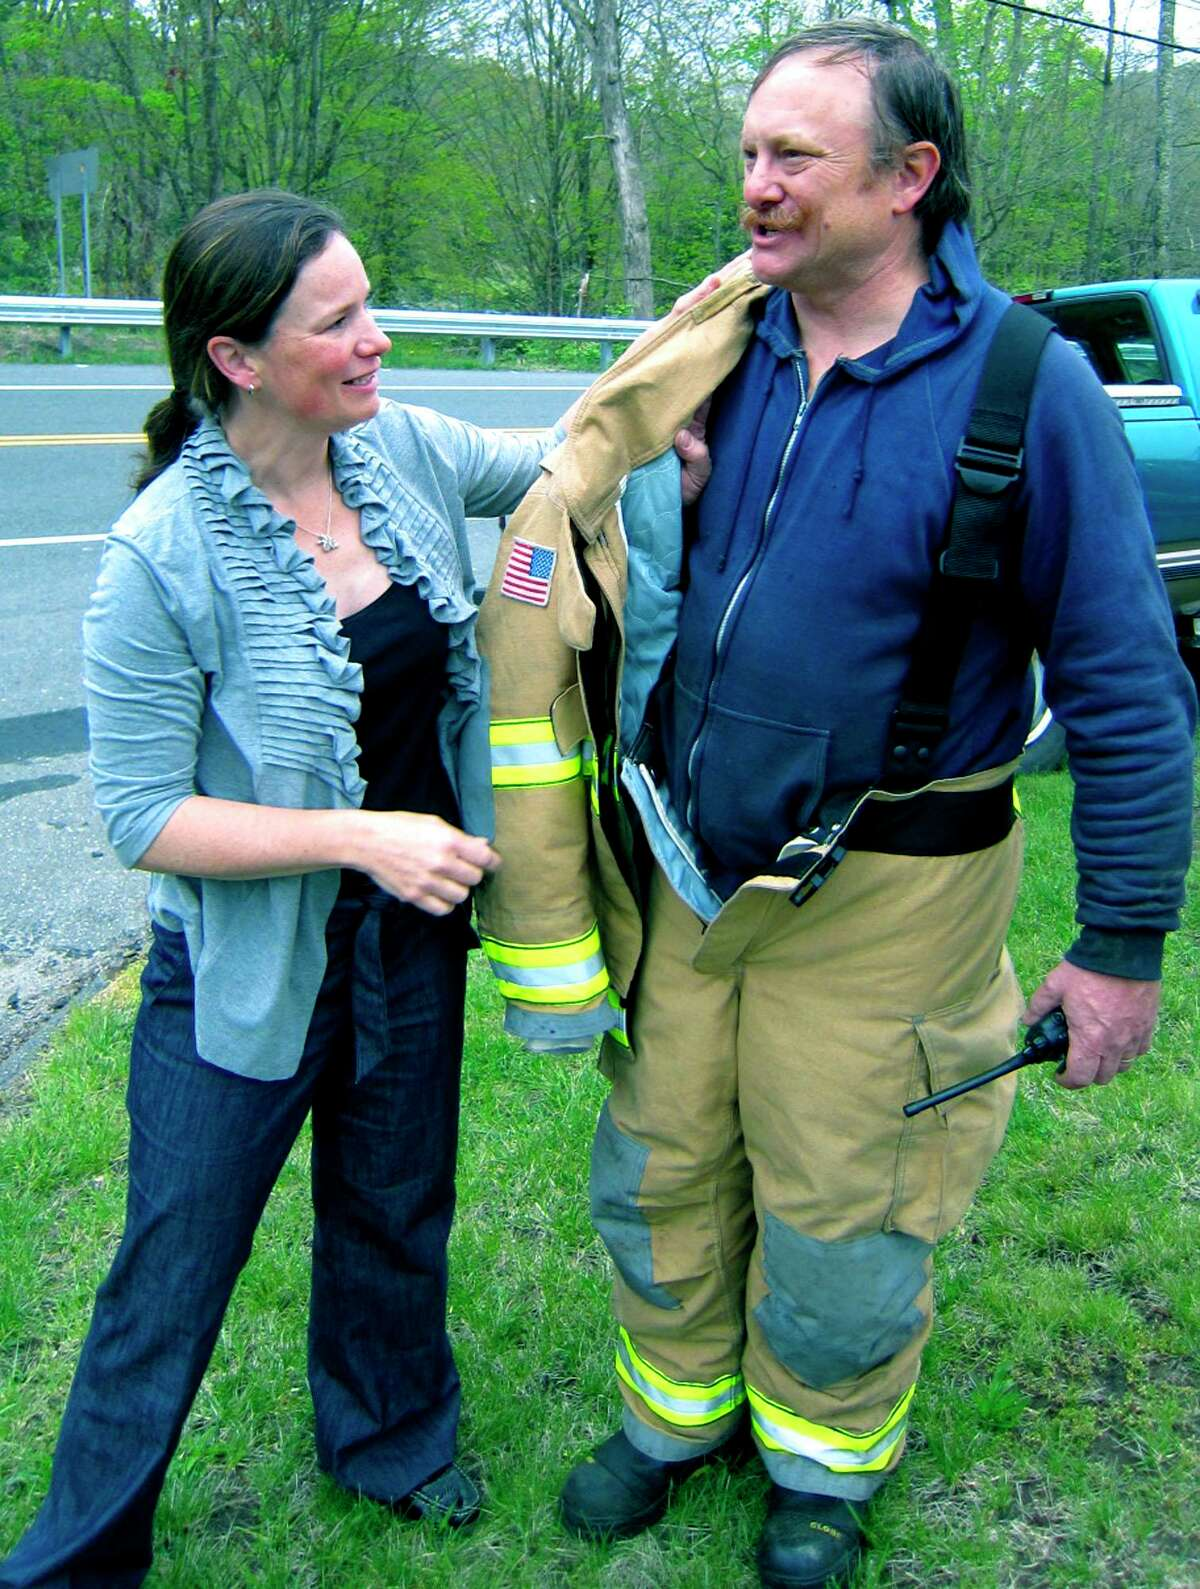 Leah Smith commiserates in May 2012 with then-first selectman and volunteer firefighter Mark Lyon after a fire had ravaged the town's highway garage.